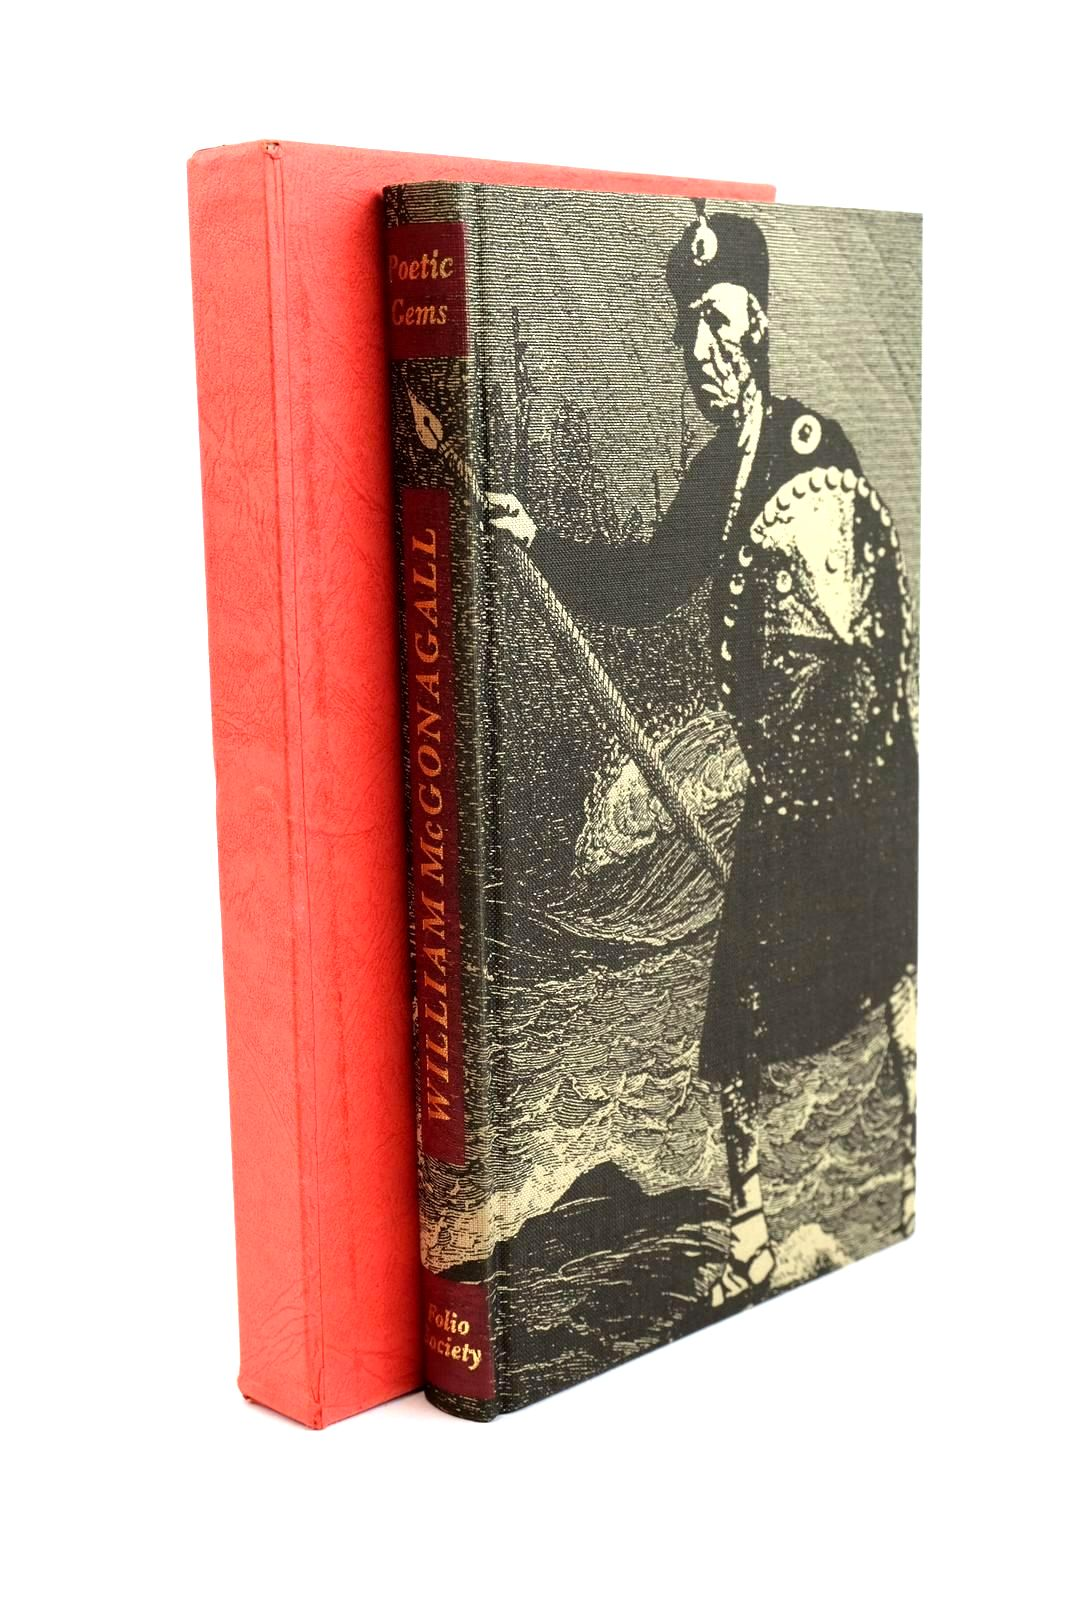 Photo of POETIC GEMS written by McGonagall, William illustrated by Foreman, Michael published by Folio Society (STOCK CODE: 1320399)  for sale by Stella & Rose's Books